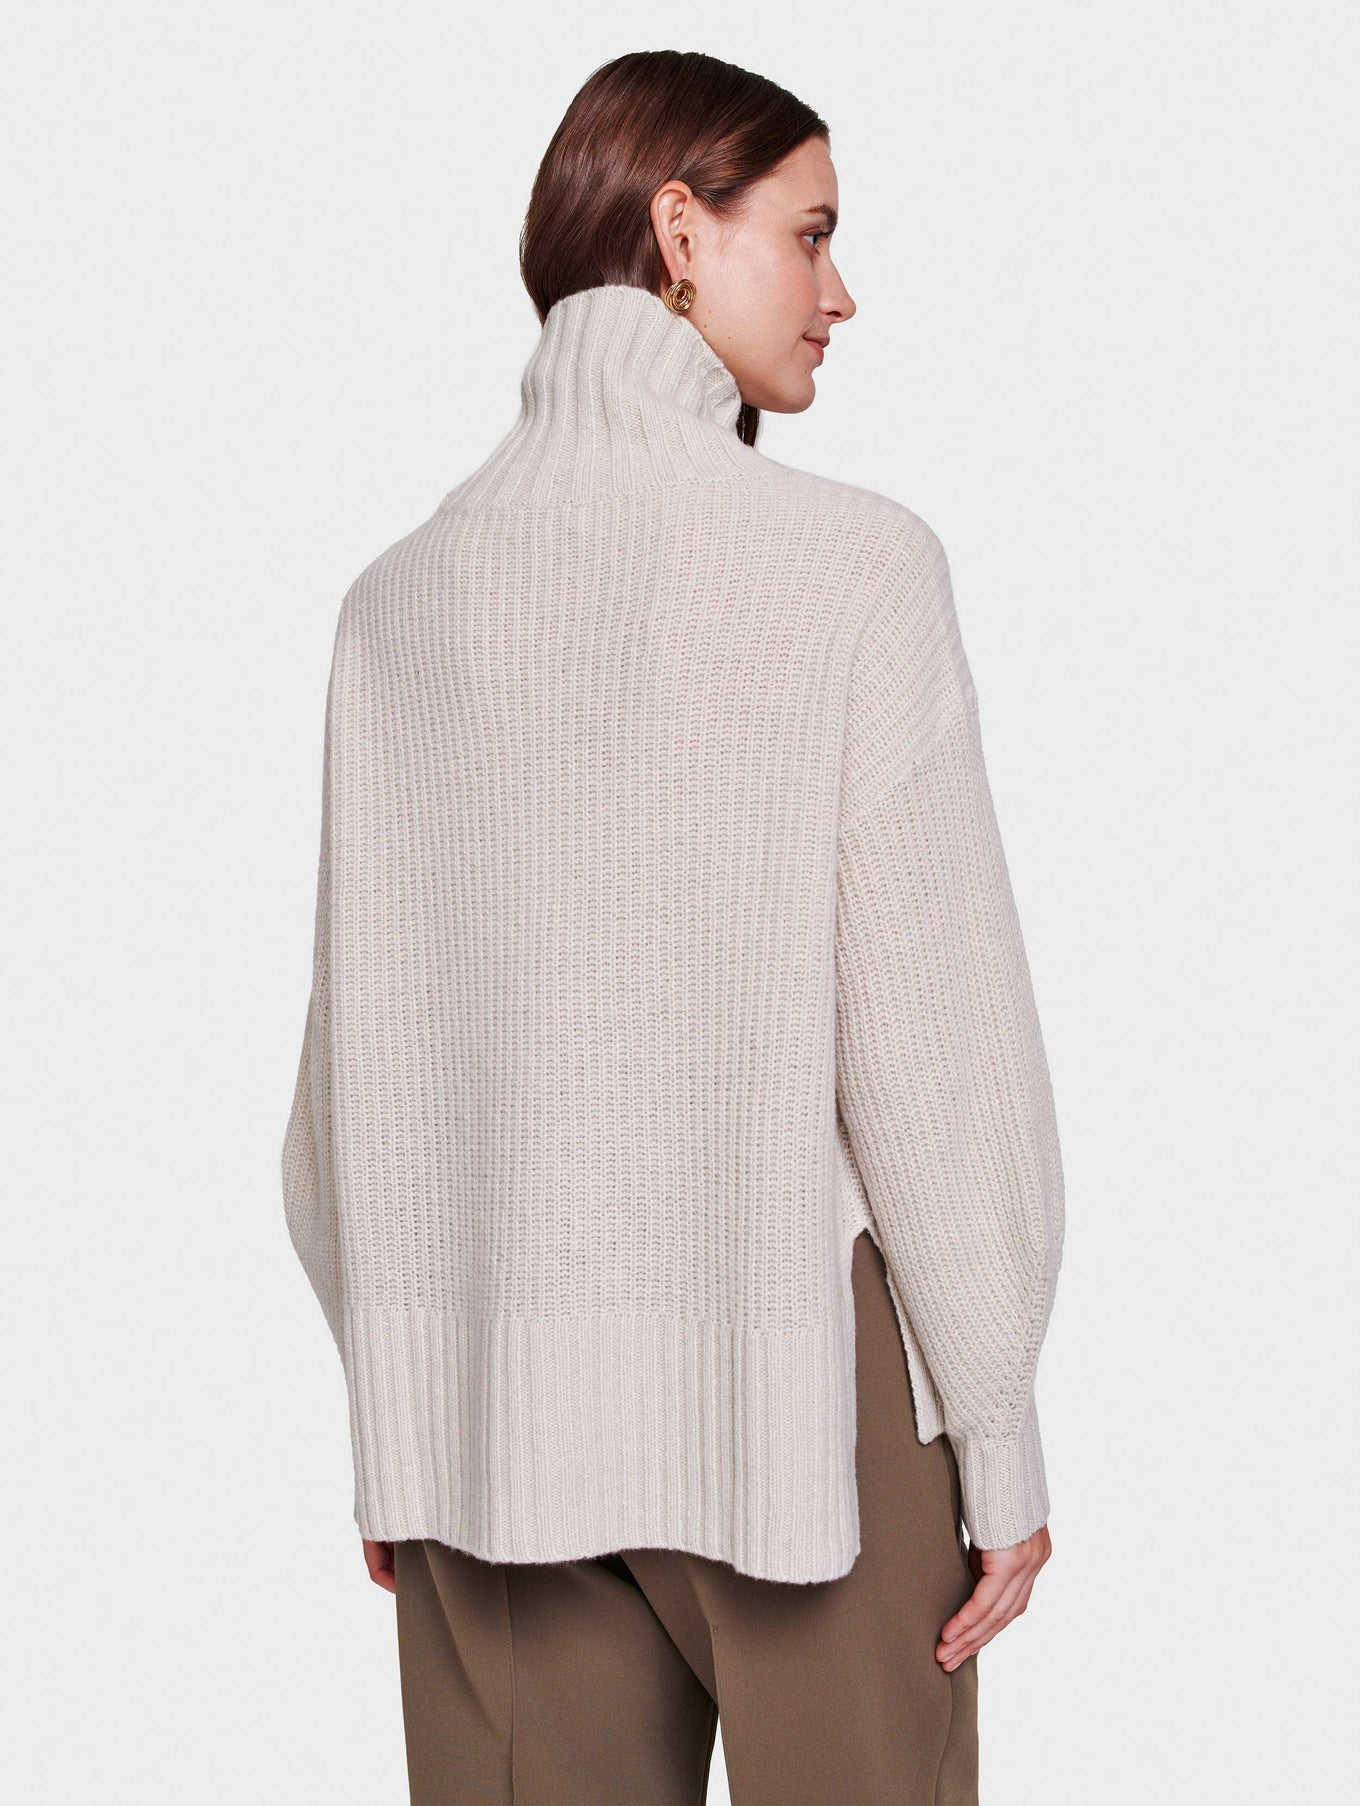 Recycled Cashmere Rib Turtleneck